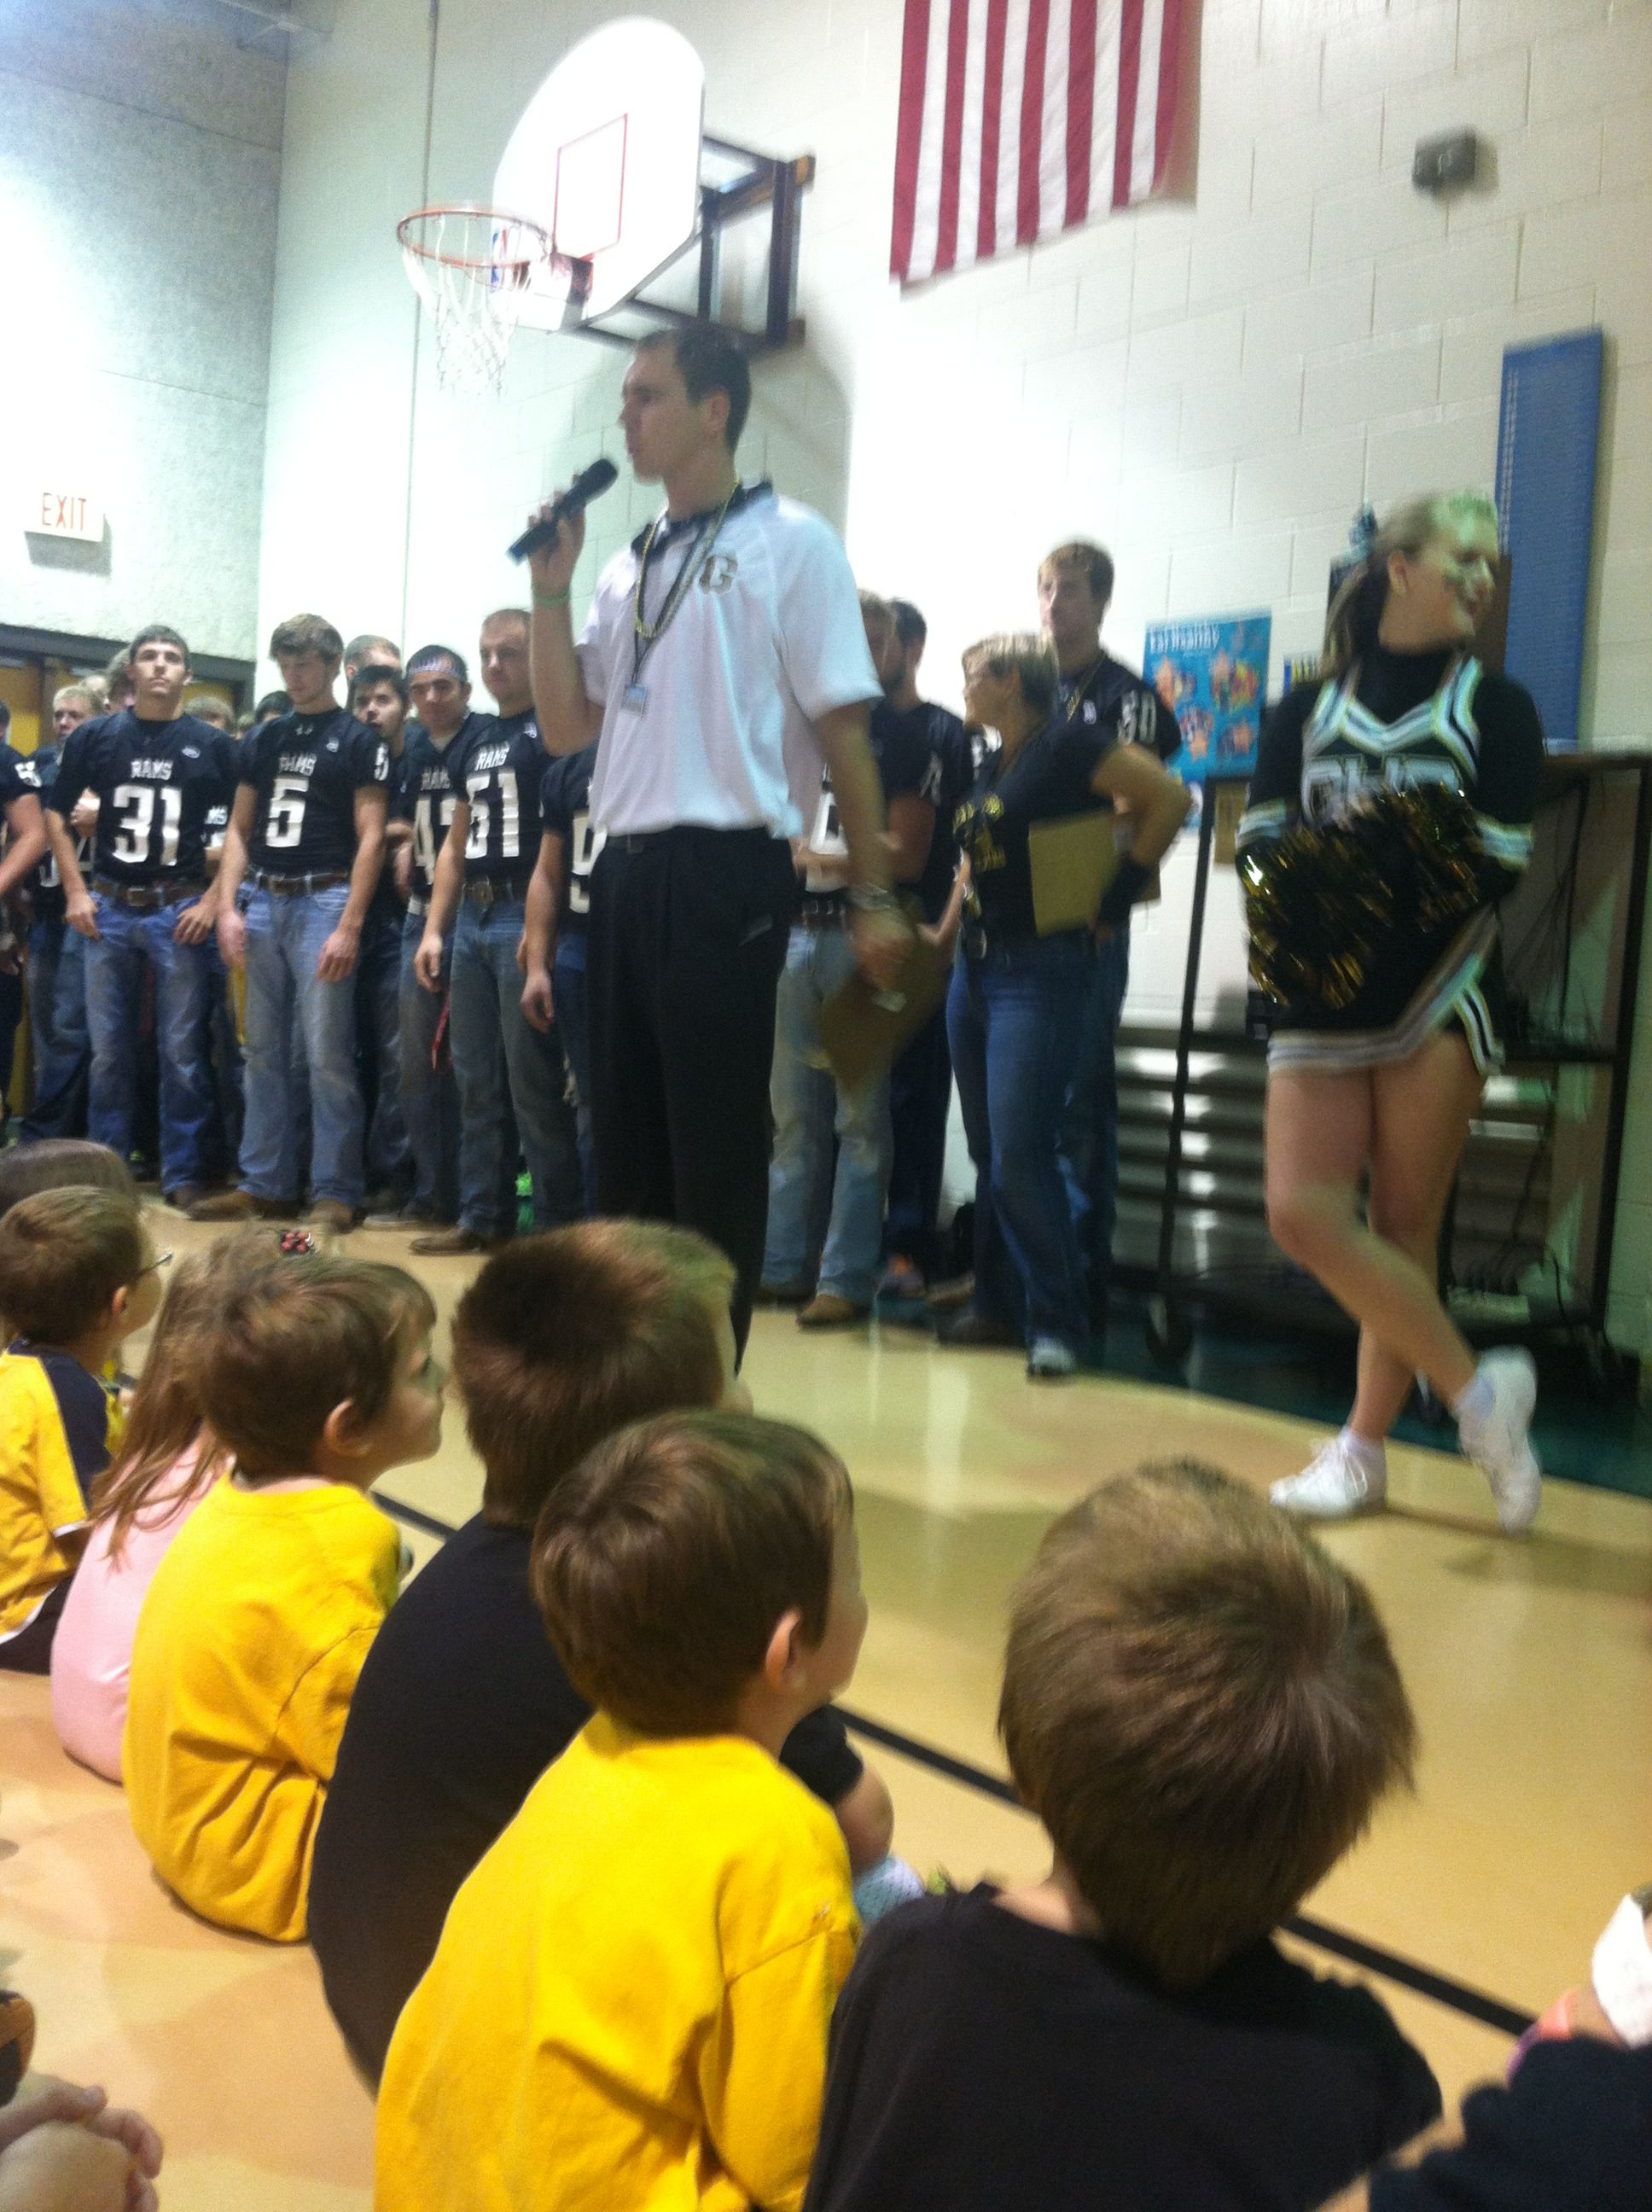 Athletic/activity director talks to the kids at the